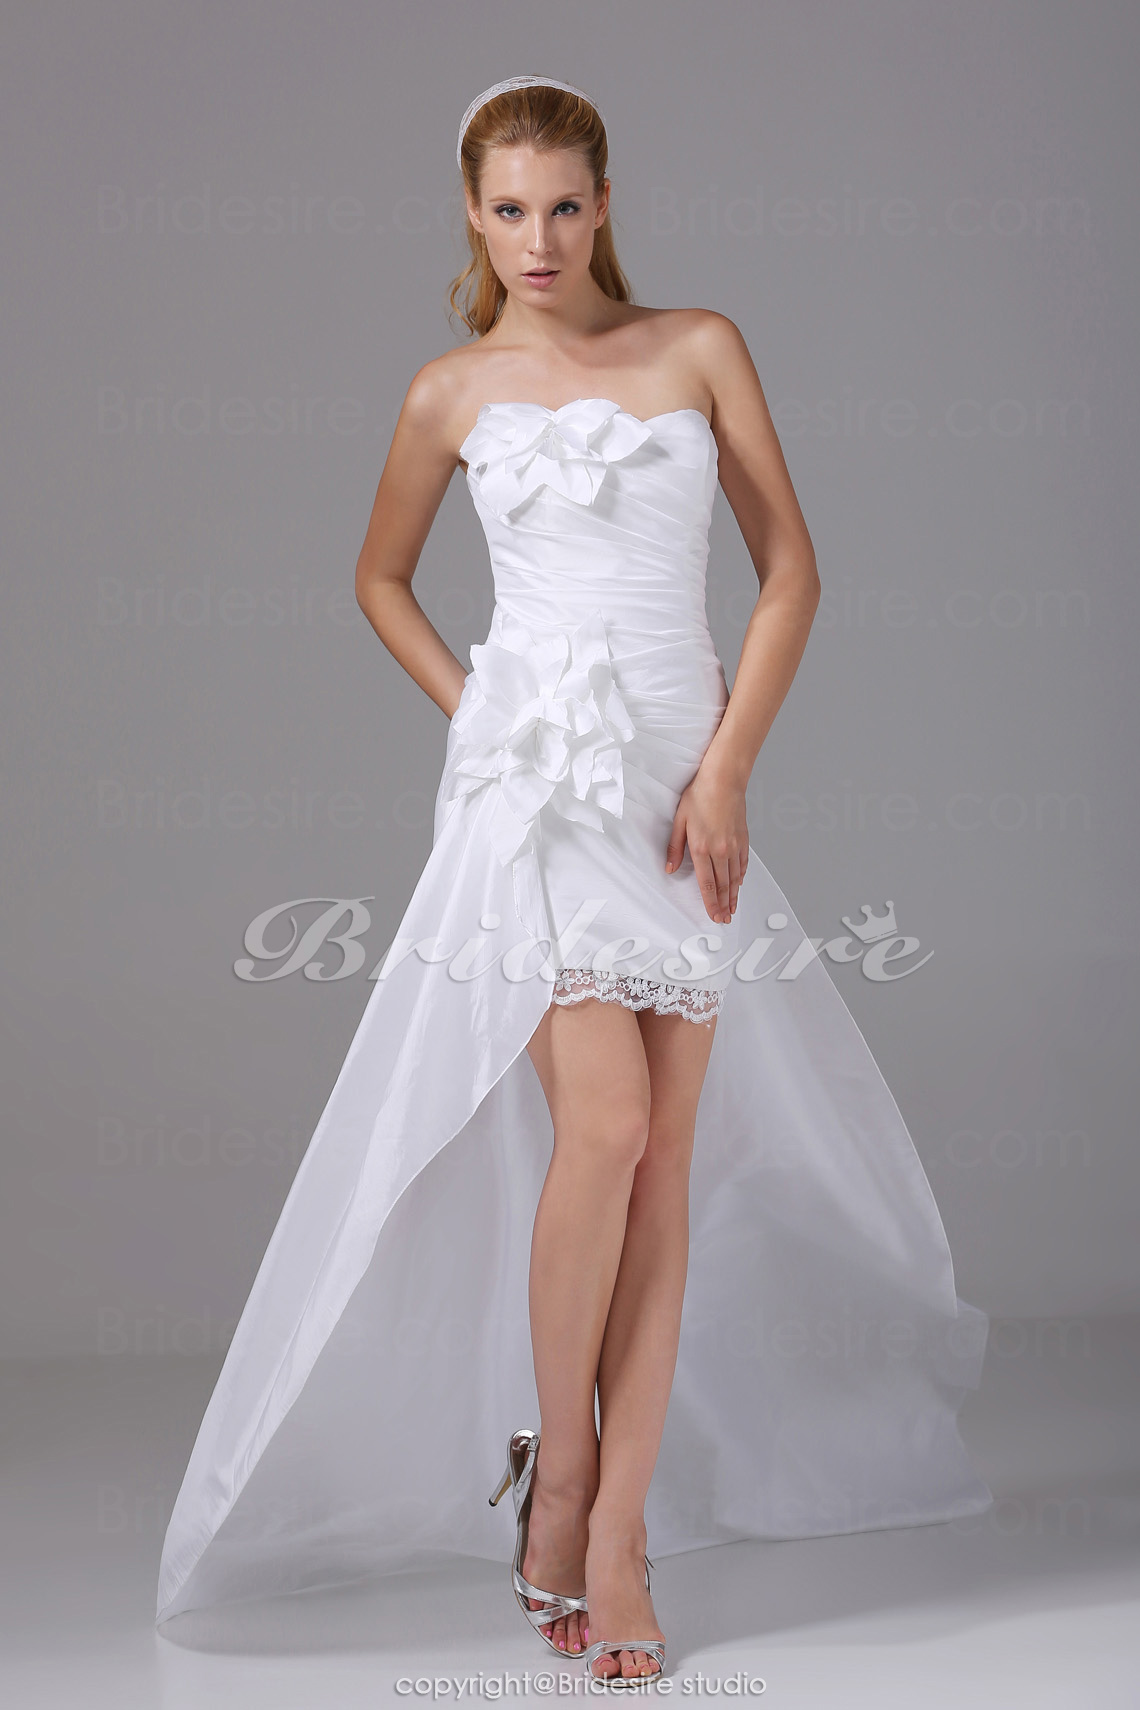 A-line Strapless Asymmetrical Short/Mini Court Train Sleeveless Taffeta Lace Wedding Dress